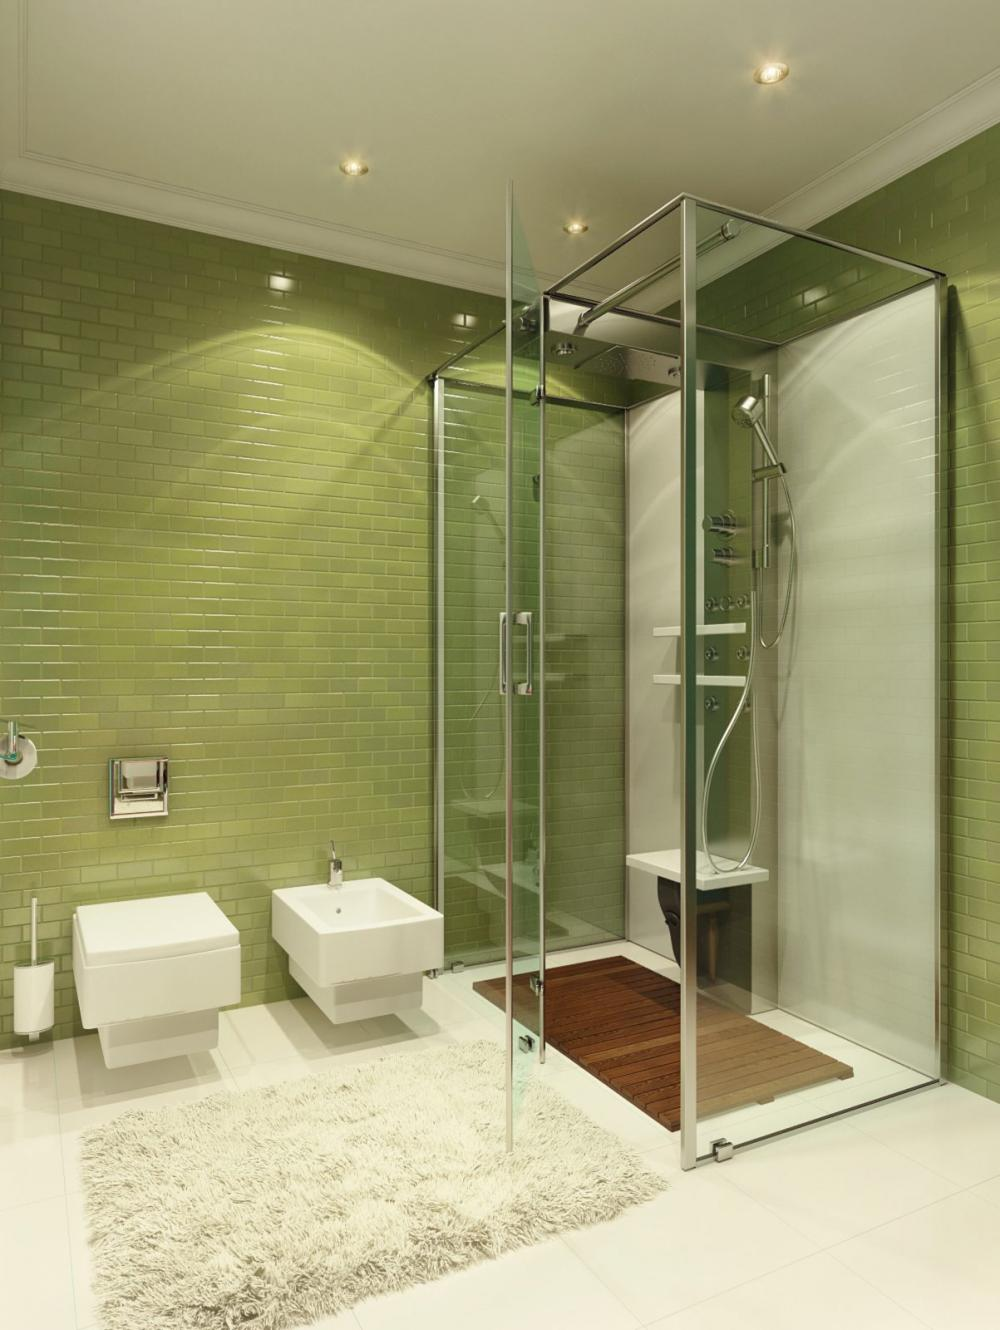 bathroom-captovating-barhroom-design-with-green-tile-bathroom-design-using-glass-shower-room-wall-nice-overhead-small-lamps-cool-square-white-sinks-artistic-and-cool-shower-designs-with-glass-tiles